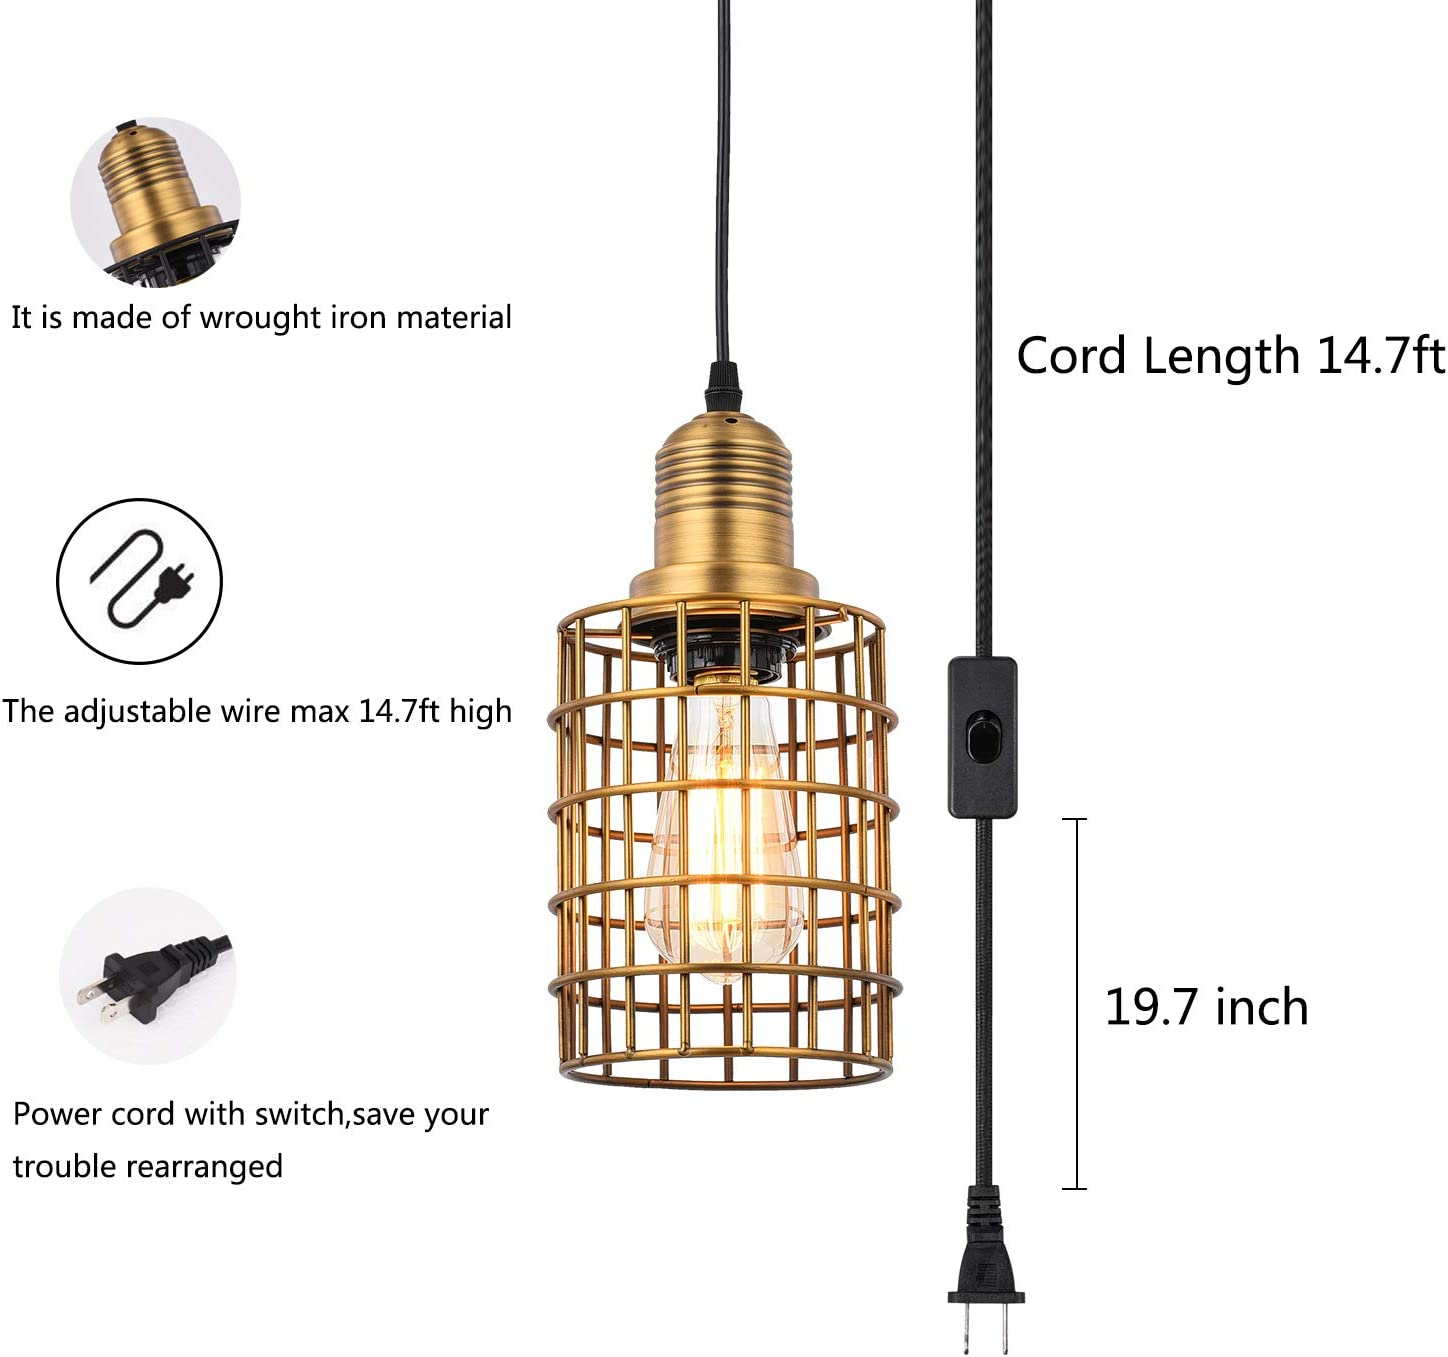 Black Topotdor Pendant Light with Plug in Cord 2 Pack,Vintage Adjustable Industrial Hanging Cage Lighting E26 Edison Plug in Light Fixture On//Off Switch